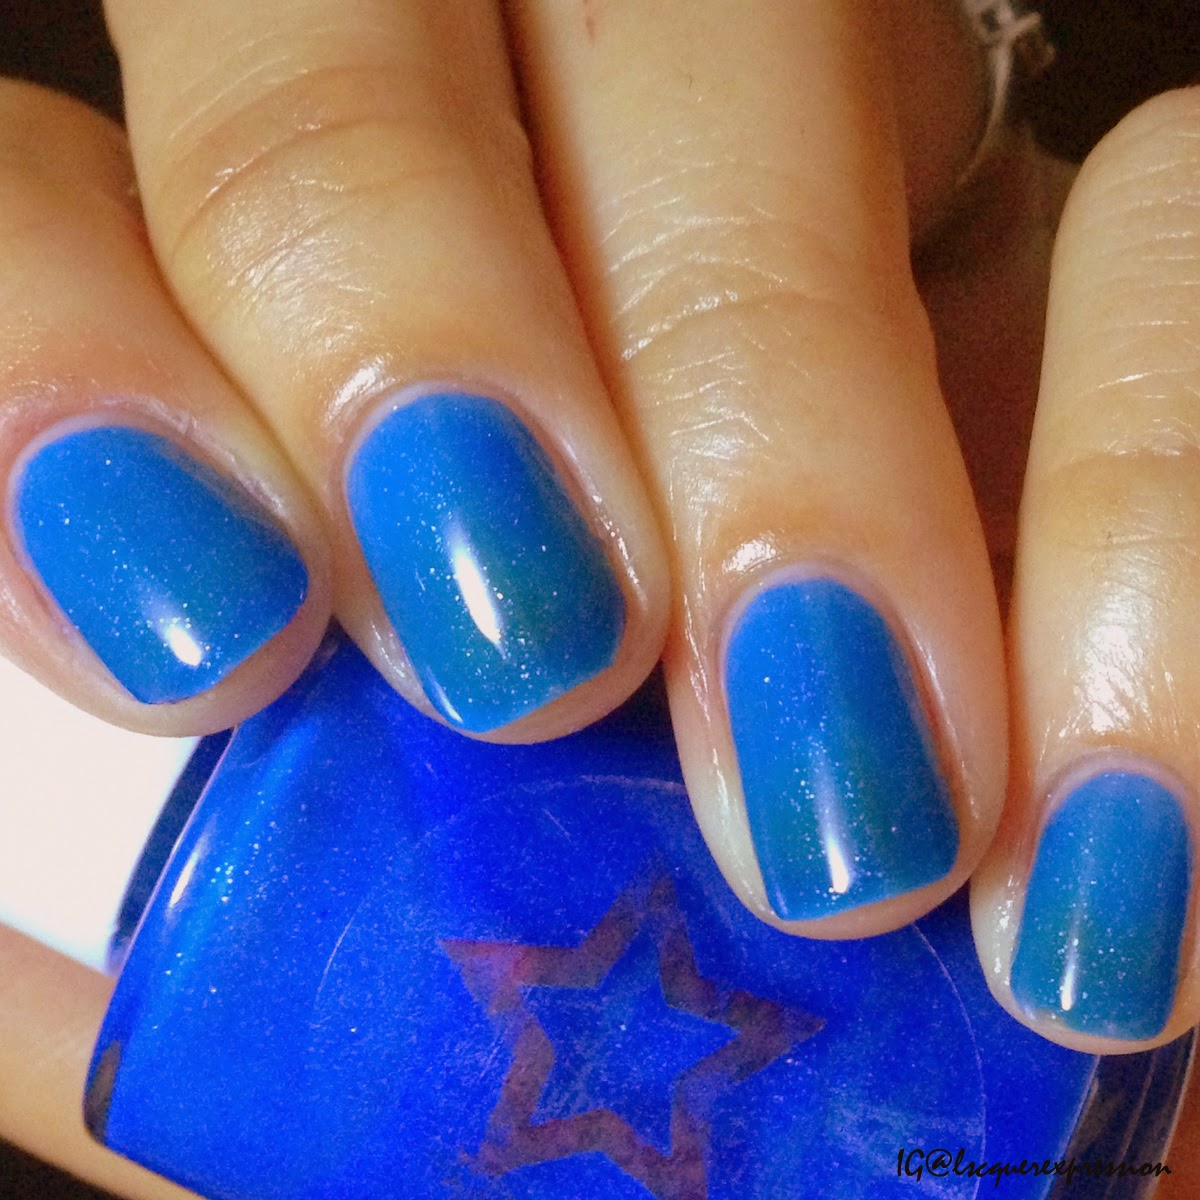 swatch and review of Dancing Dolphins nail polish by Shinespark